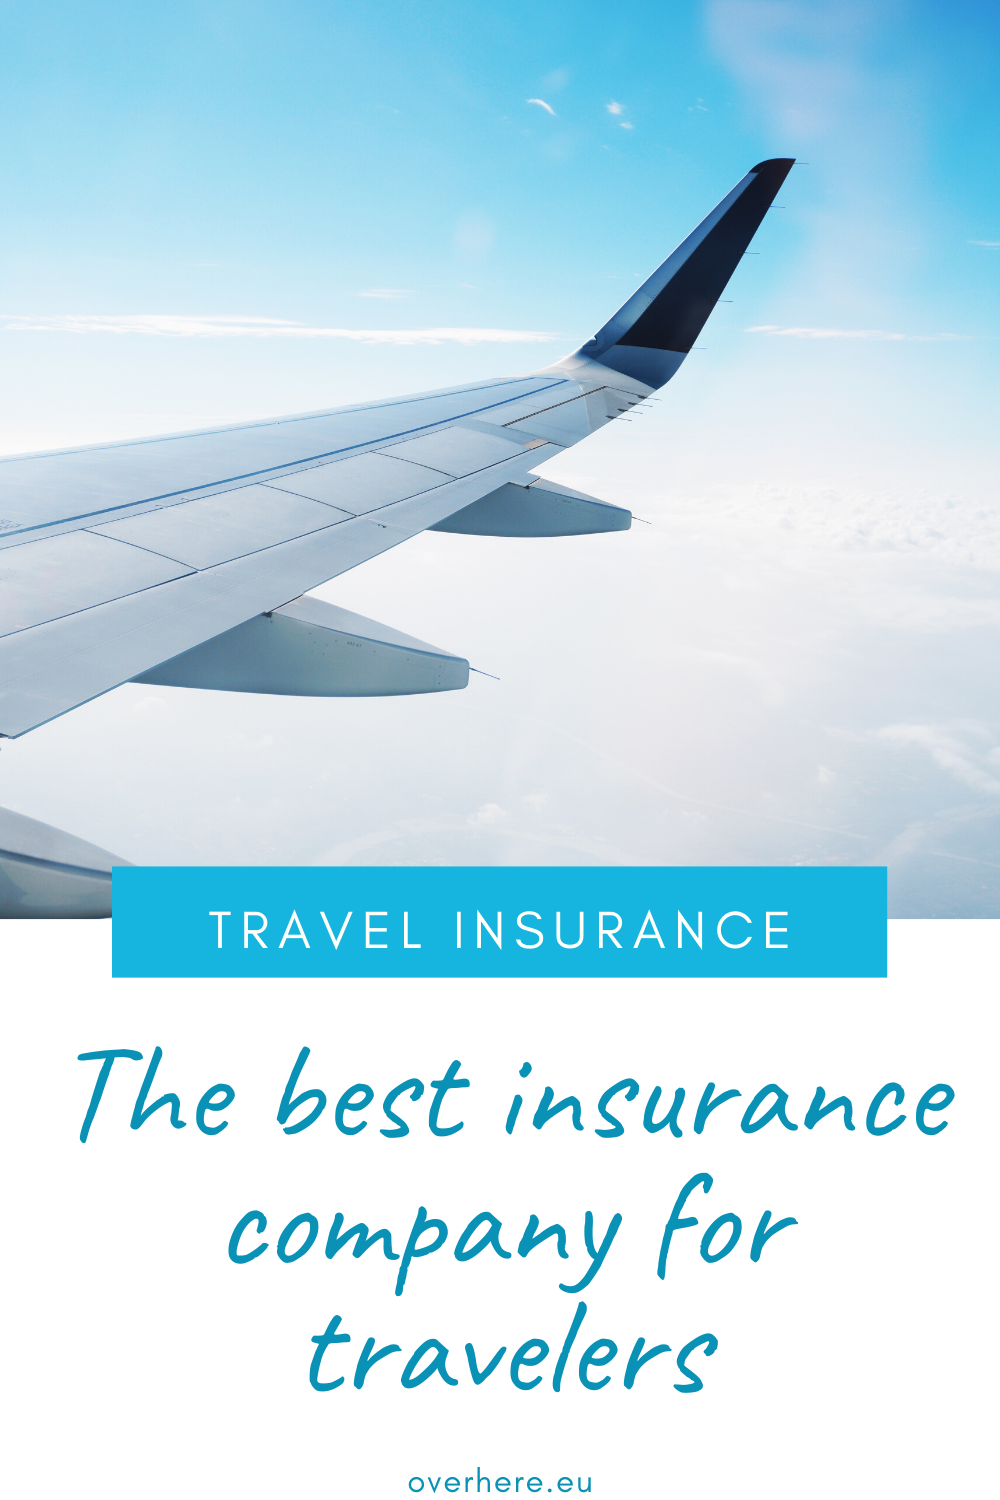 Travel Insurance Is Essential As It Could Cover Medical Expenses